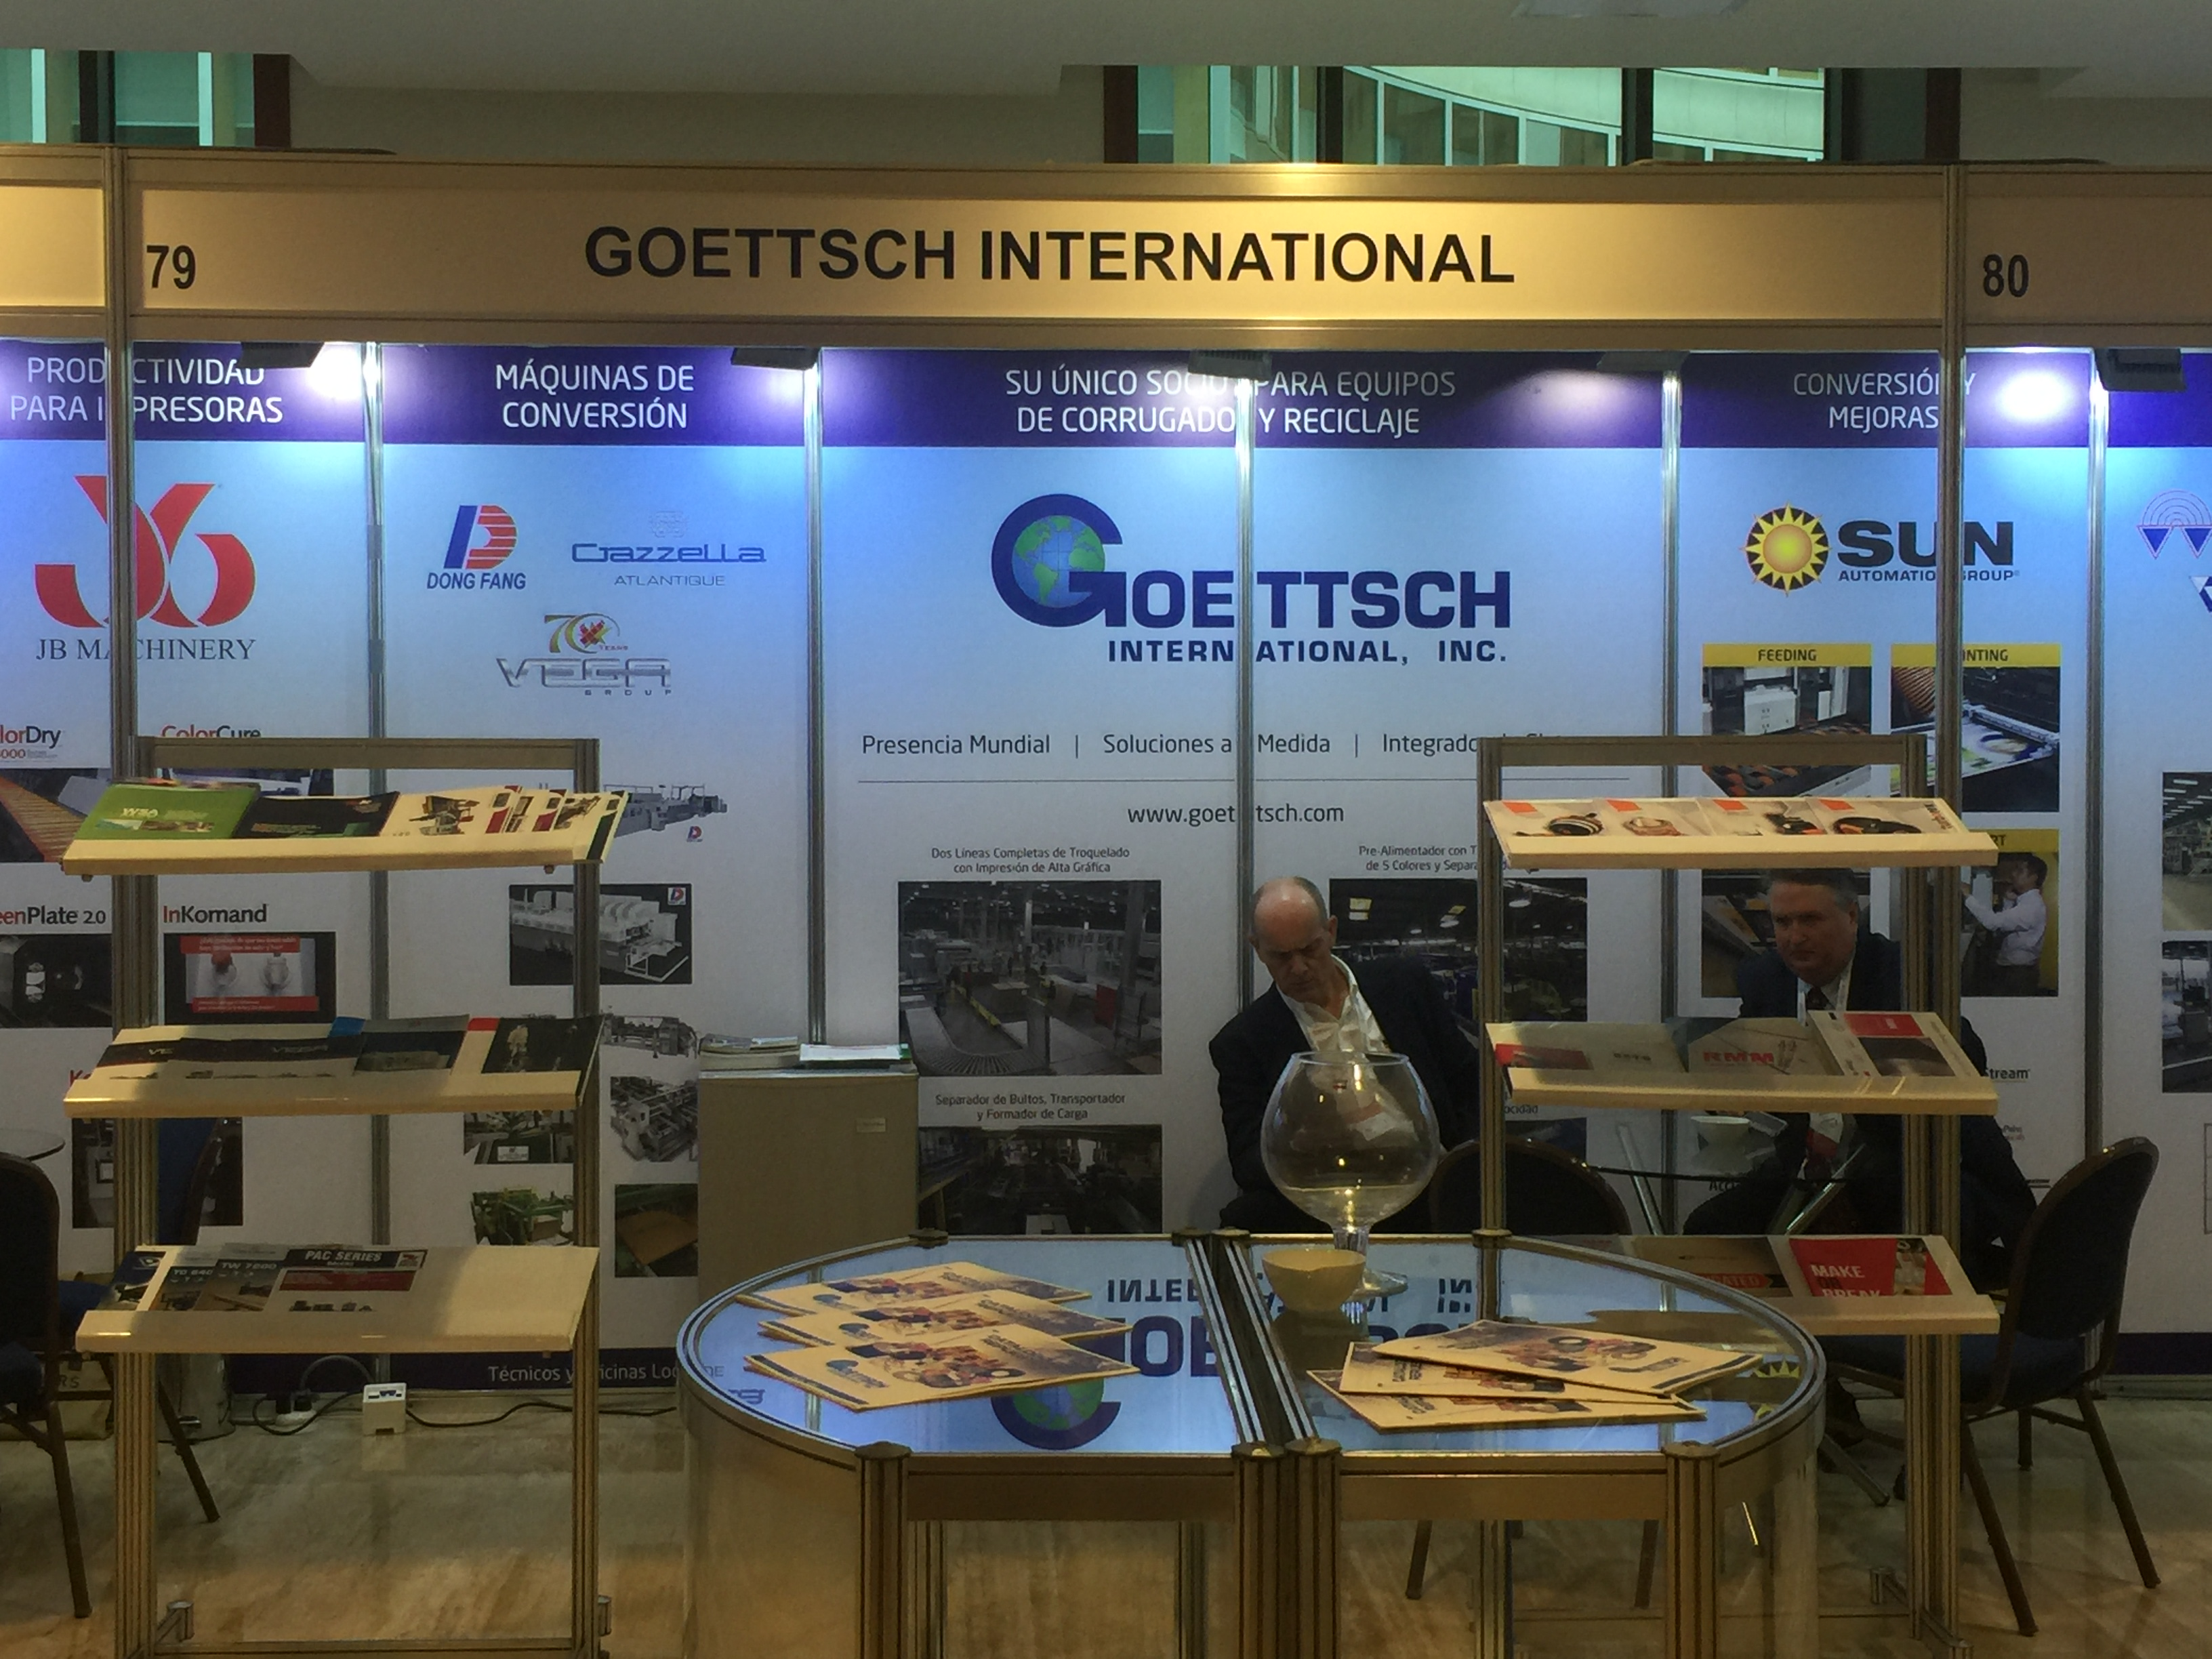 Goettsch International Exhibit - ACCCSA 2017